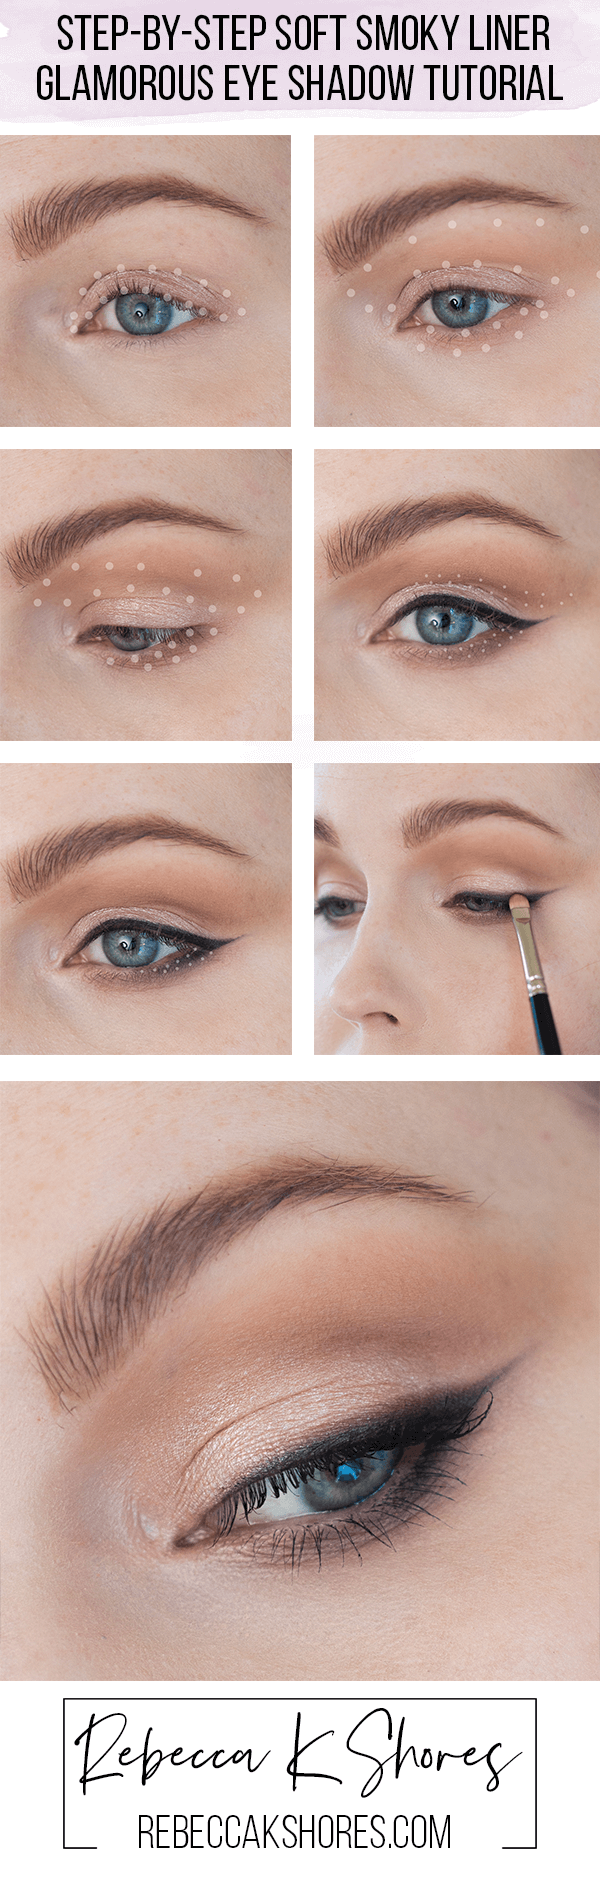 Step-by-Step-Soft-Smoky-Liner-Glamorous-Eye-shadow-Tutorial-pintrest-pictorial.png